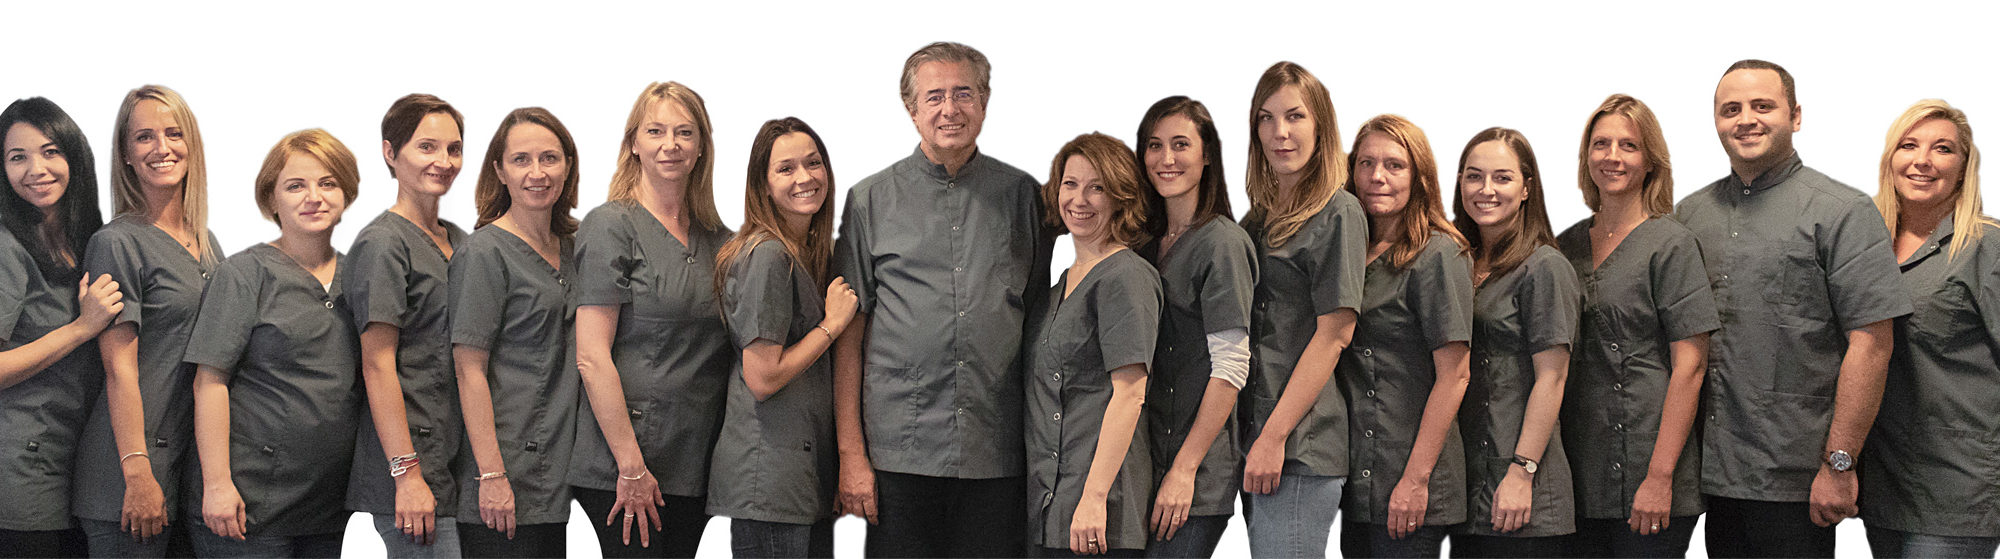 equipes orthodontistes philips